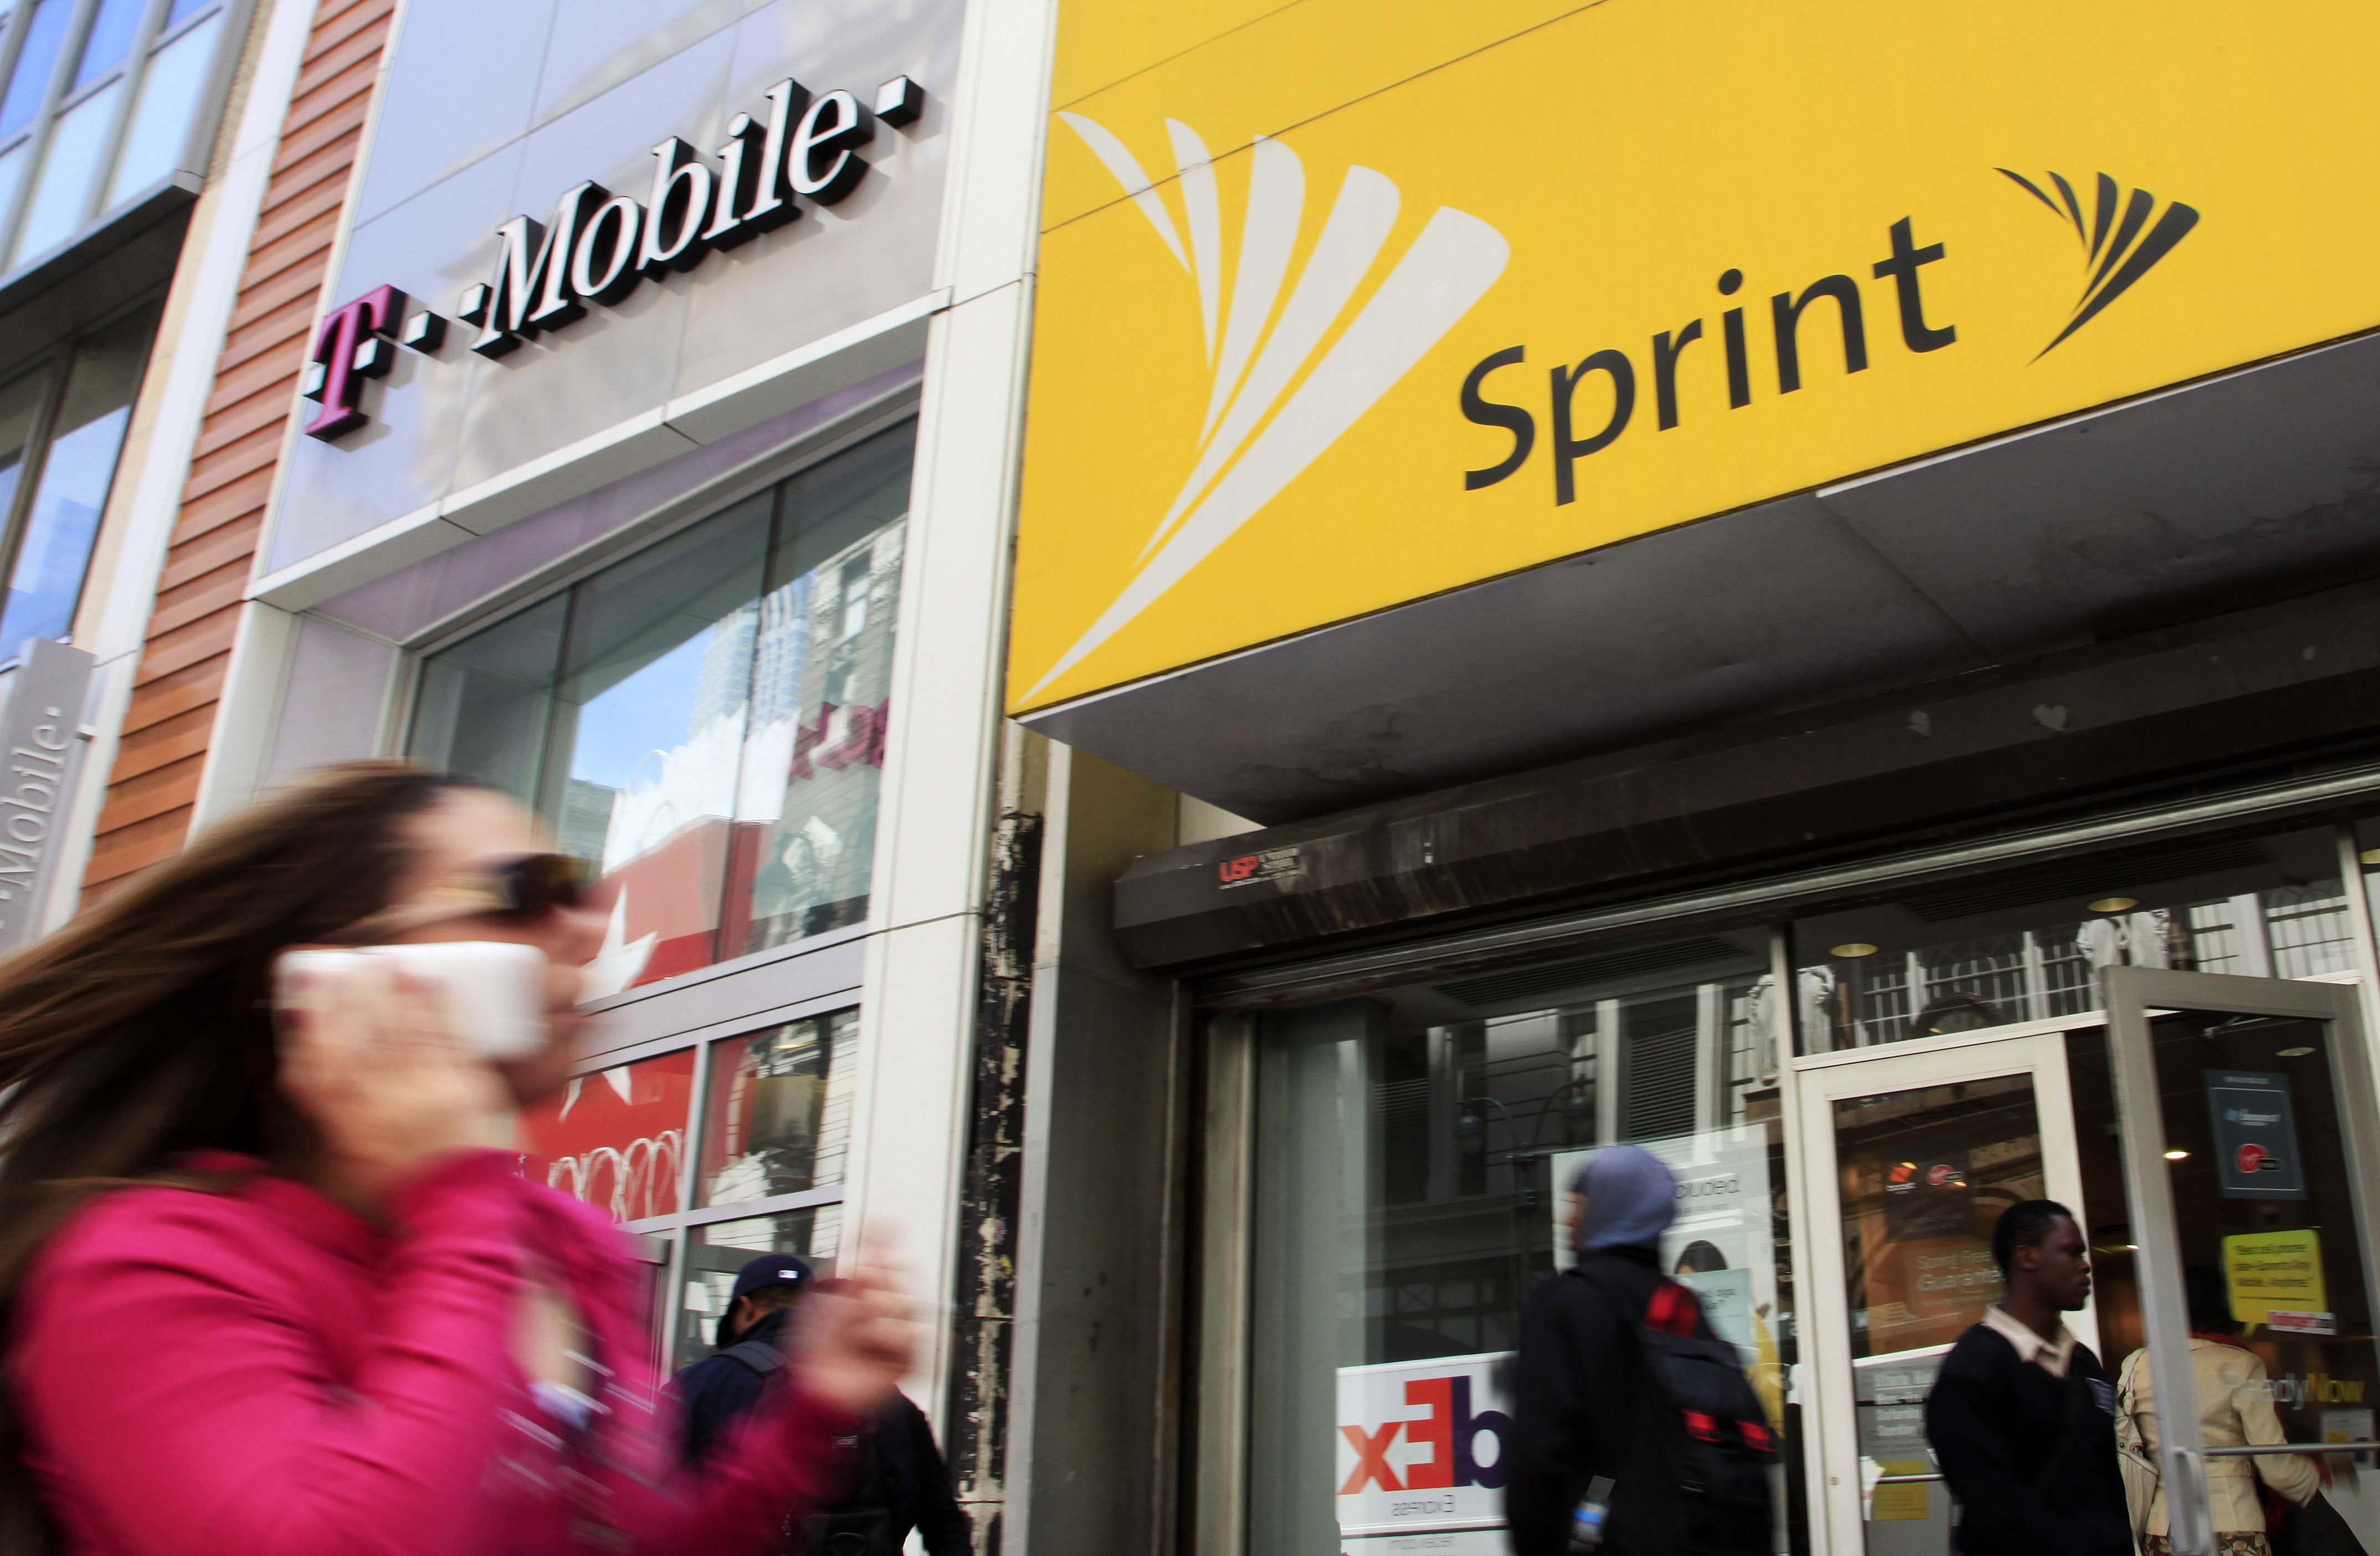 A woman using a cell phone walks past T-Mobile and Sprint stores, Tuesday, April 27, 2010, in New York. Sprint Nextel Corp. on Wednesday, April 28, said it lost a net 75,000 subscribers in the first three months of 2010, compared to a loss of 182,000 in the same quarter last year.(AP Photo/Mark Lennihan)